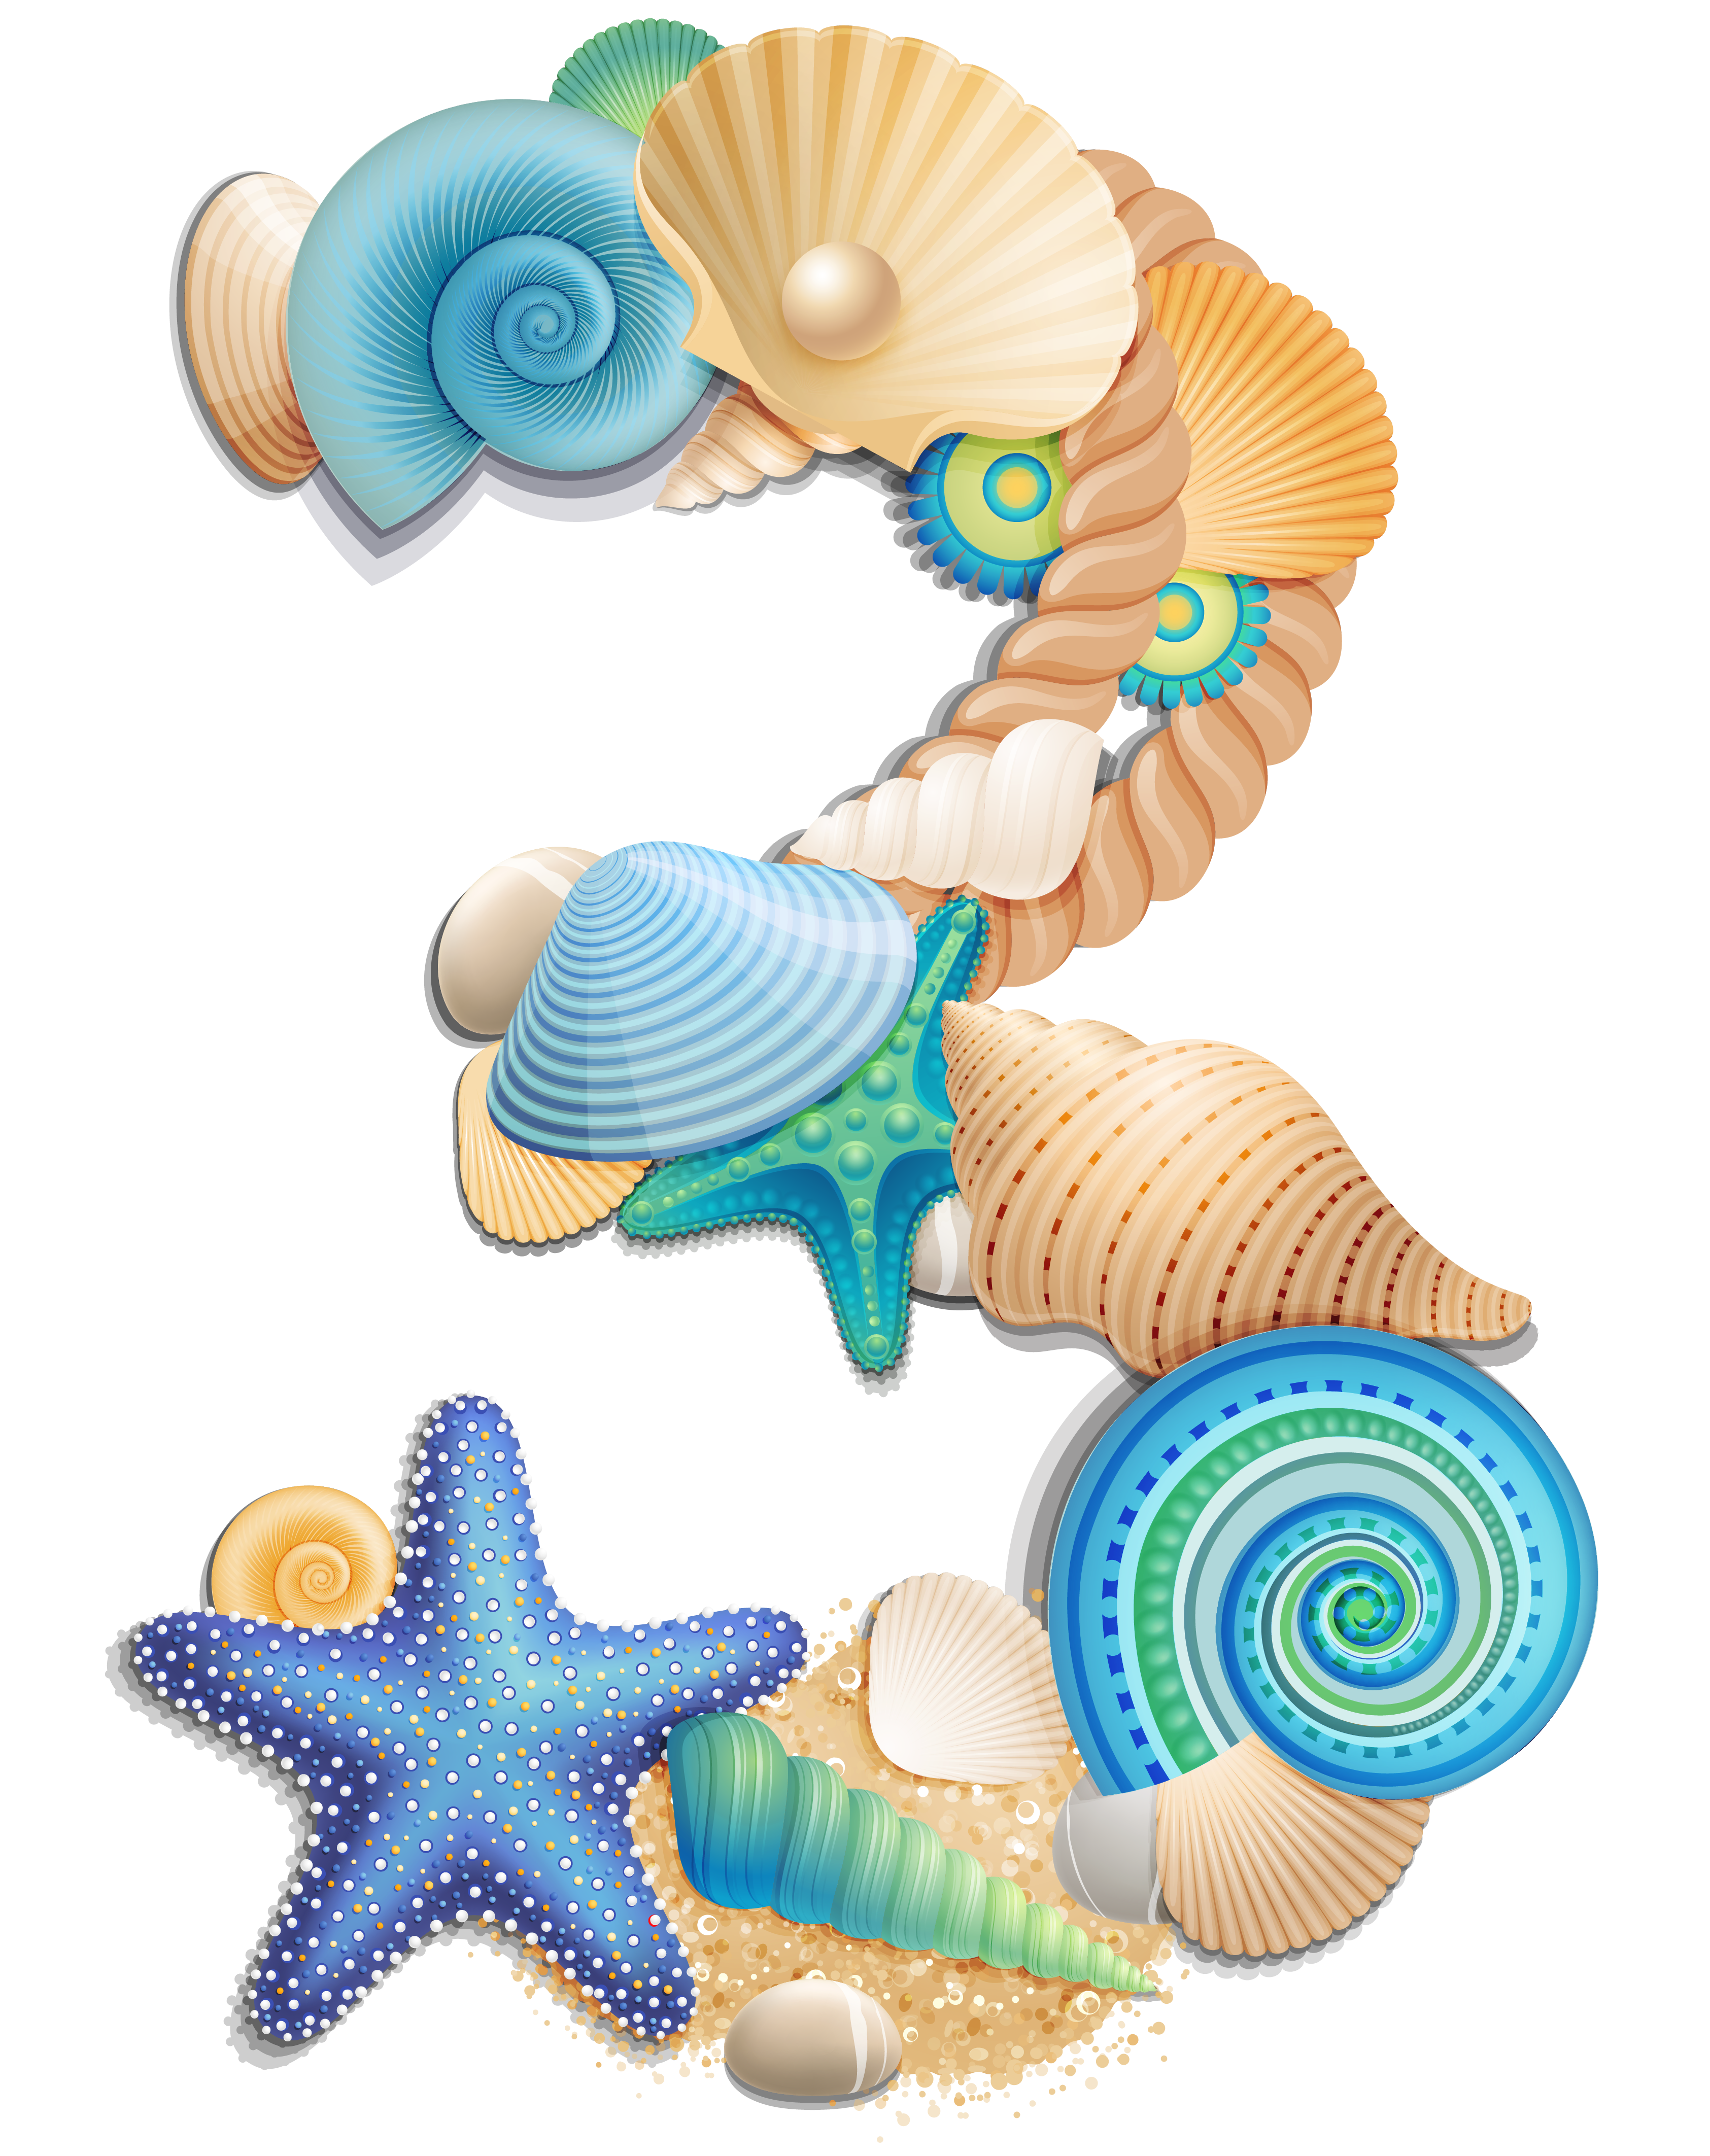 Transparent number three sea. Shell clipart turquoise